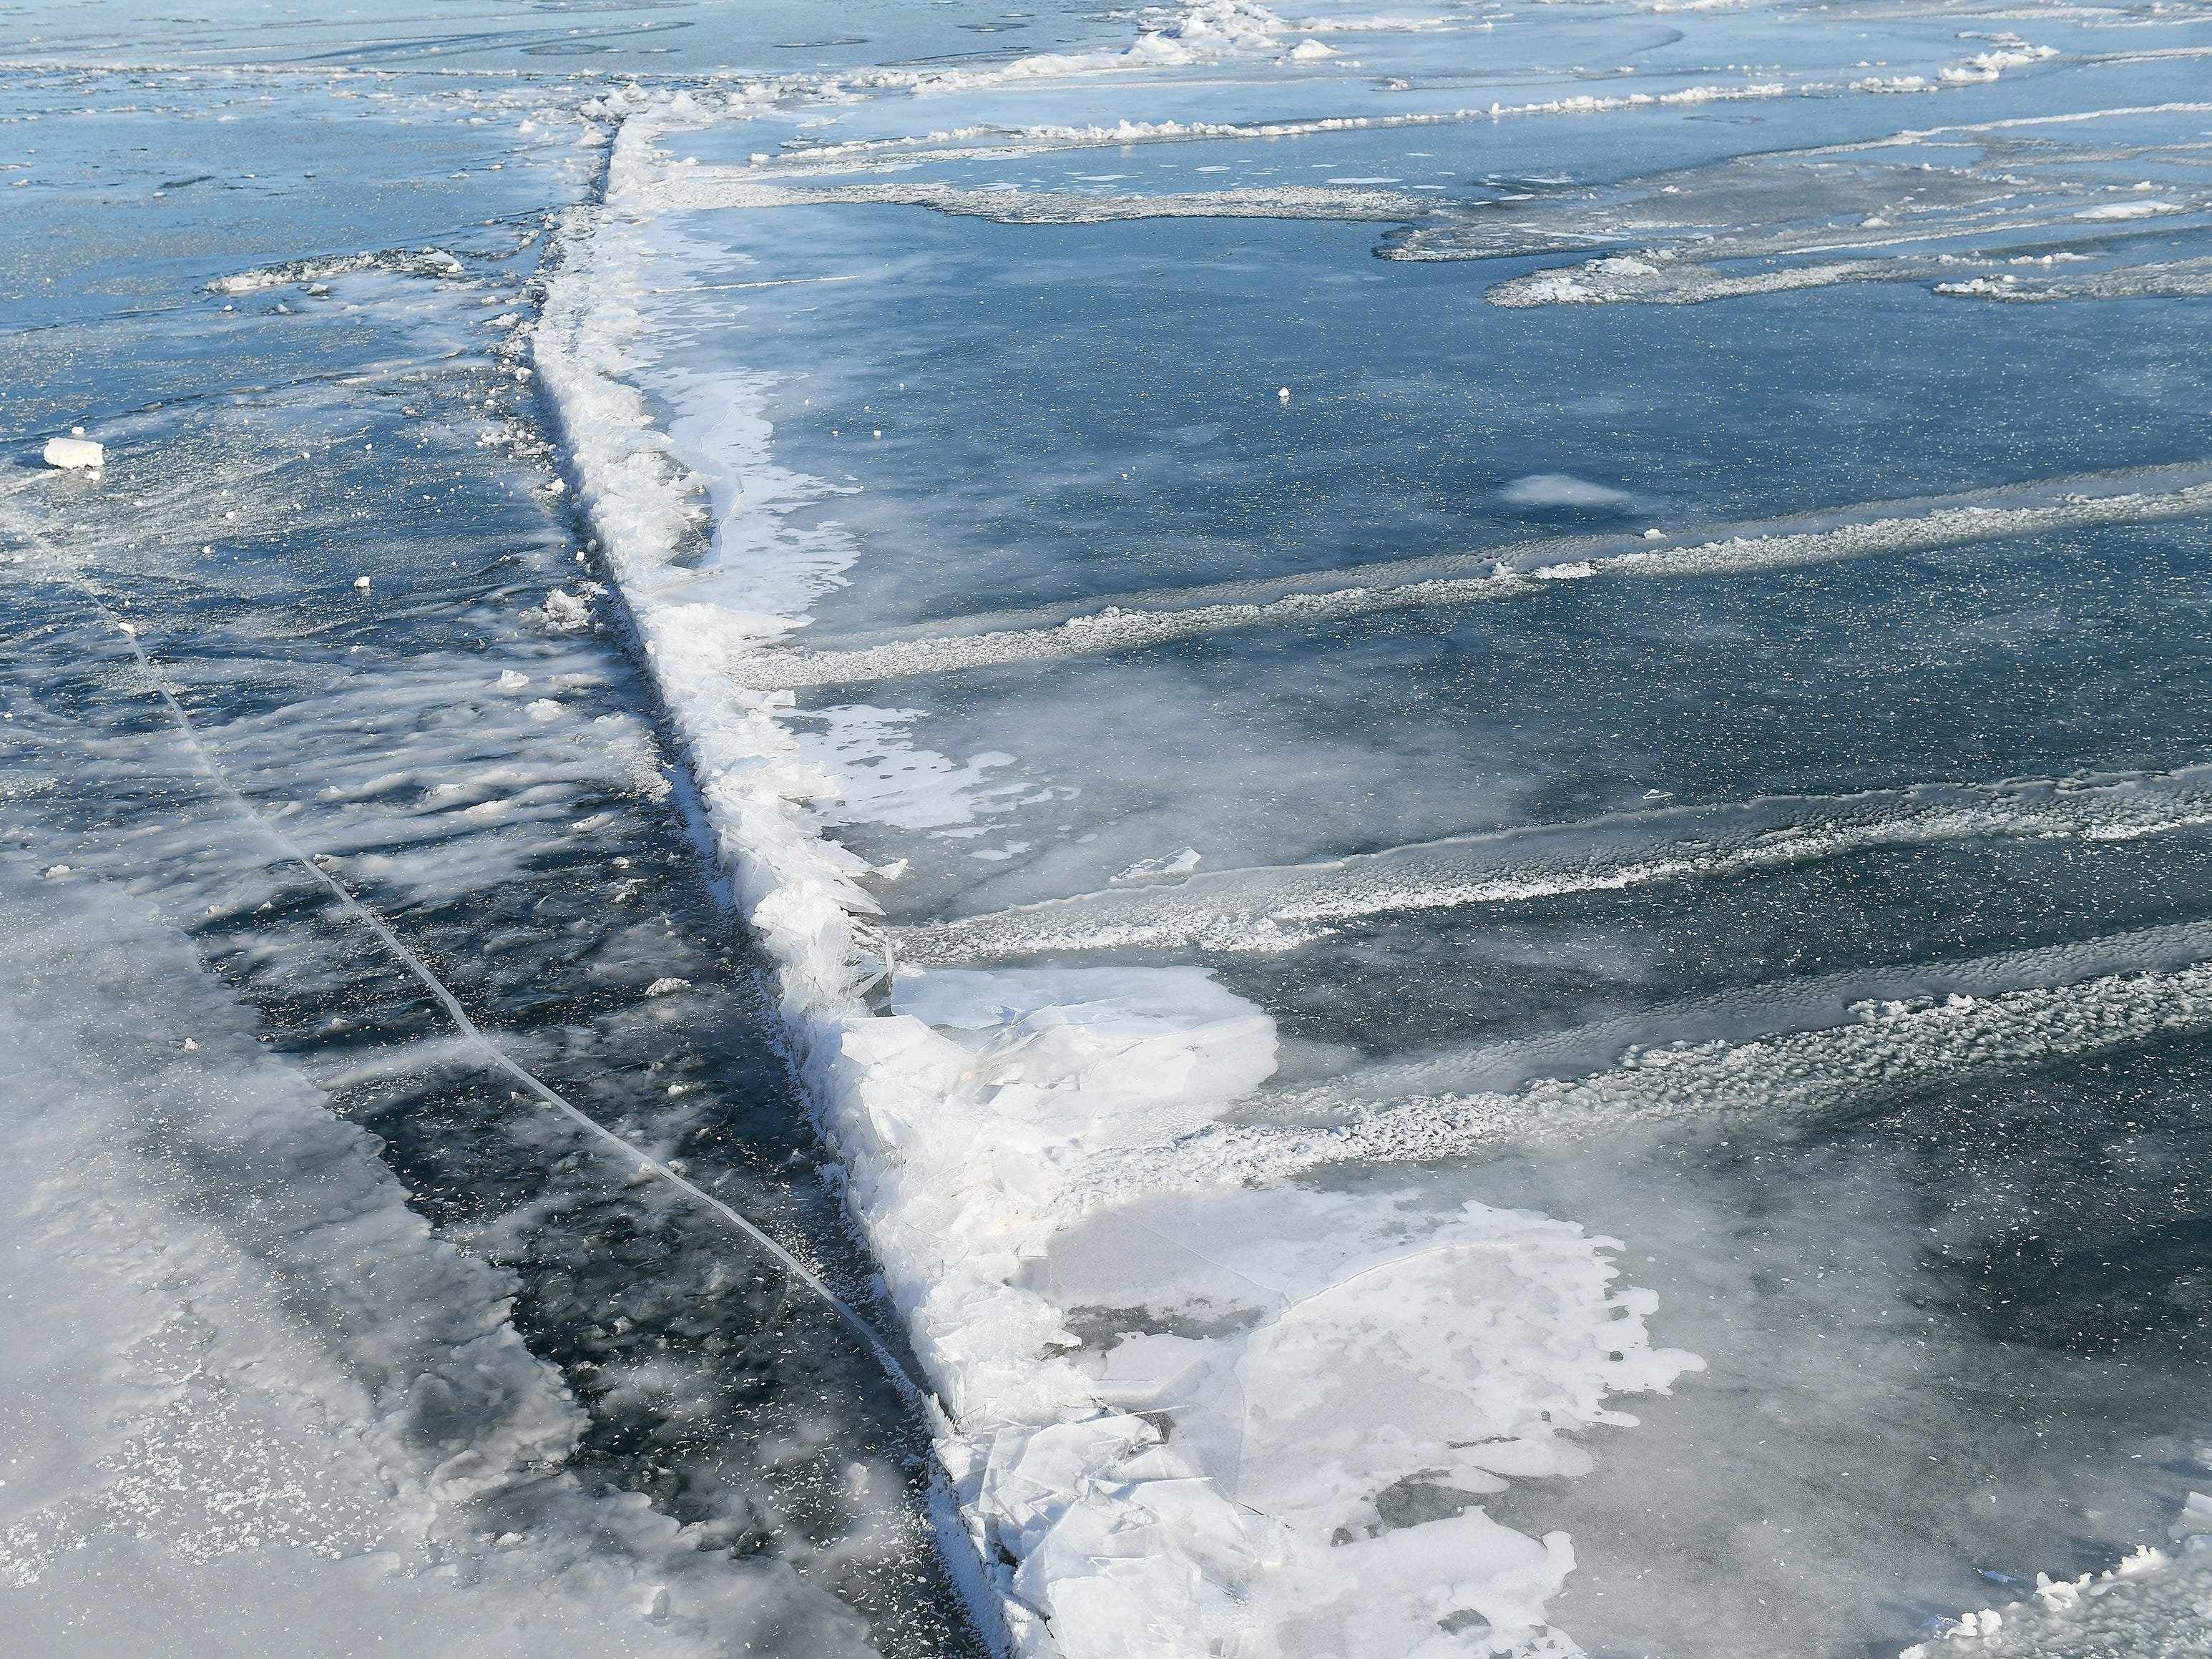 A pressure ridge forms on the icy Detroit River where floes collided.